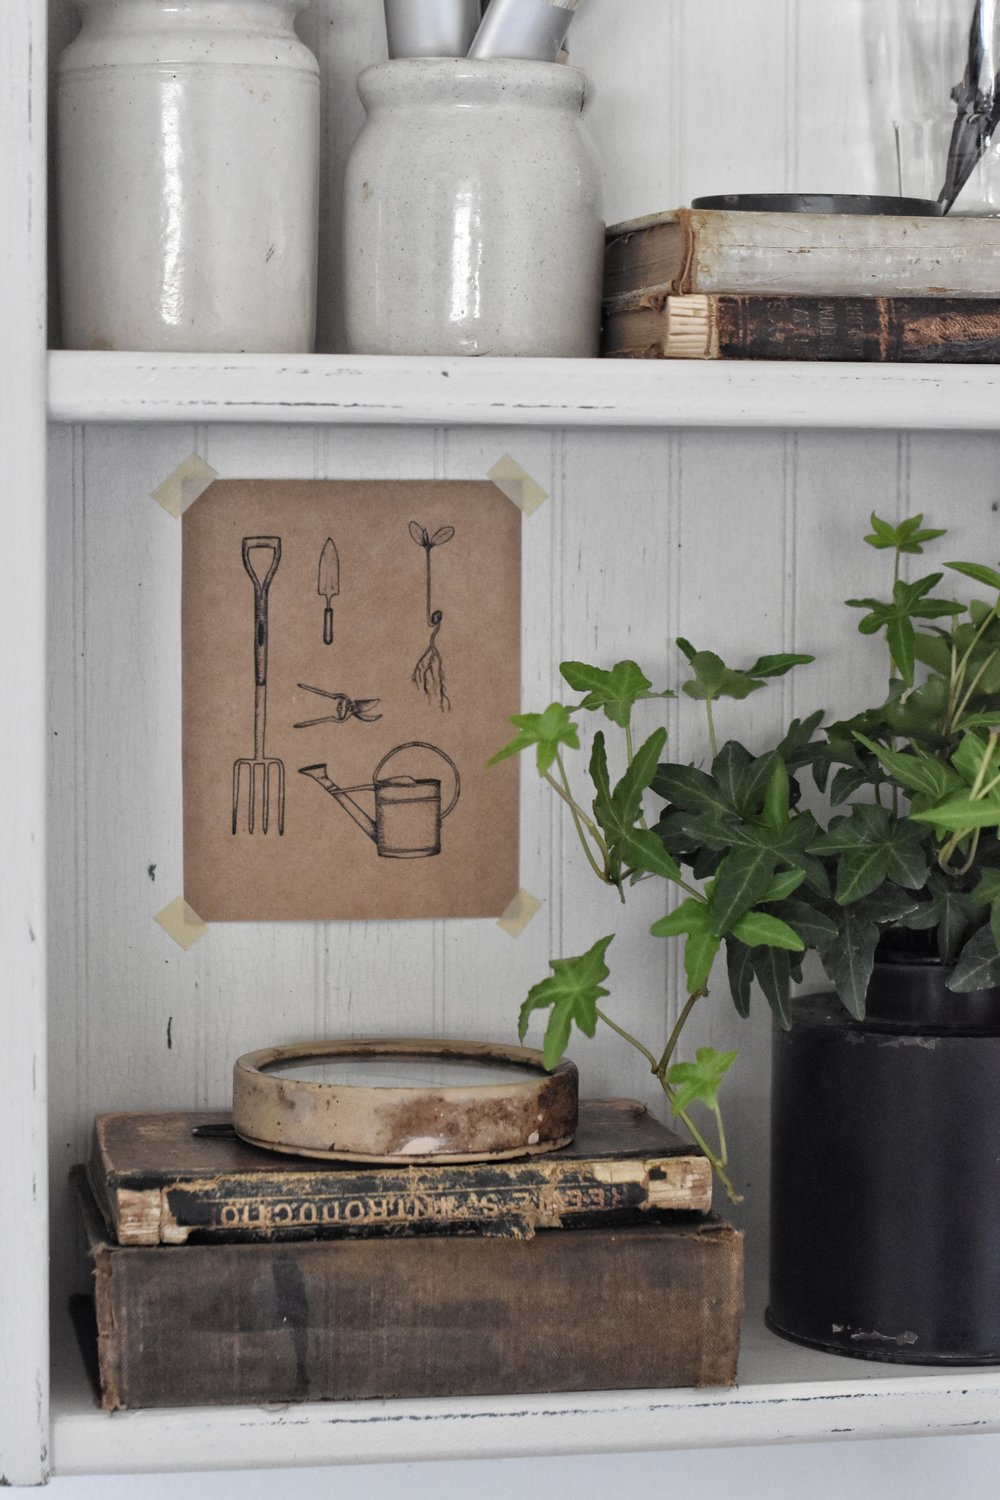 The care and keeping of houseplants and using them to decorate the house. www.flatcreekfarmhouse.com